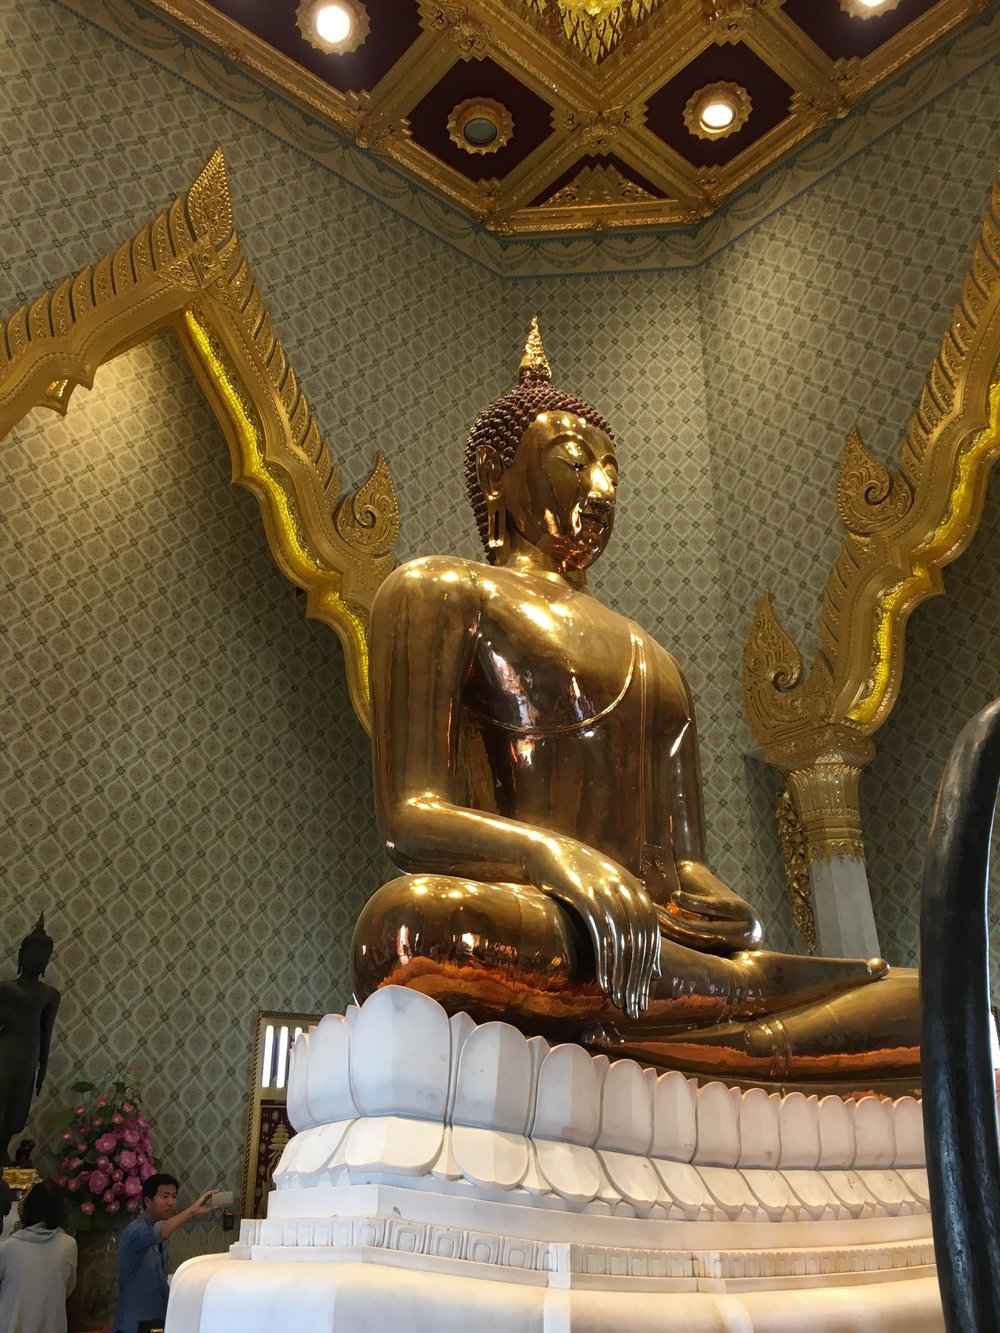 Wat Traimet is home to the largest solid gold Buddha in the world, apparently weighing 5 tons!